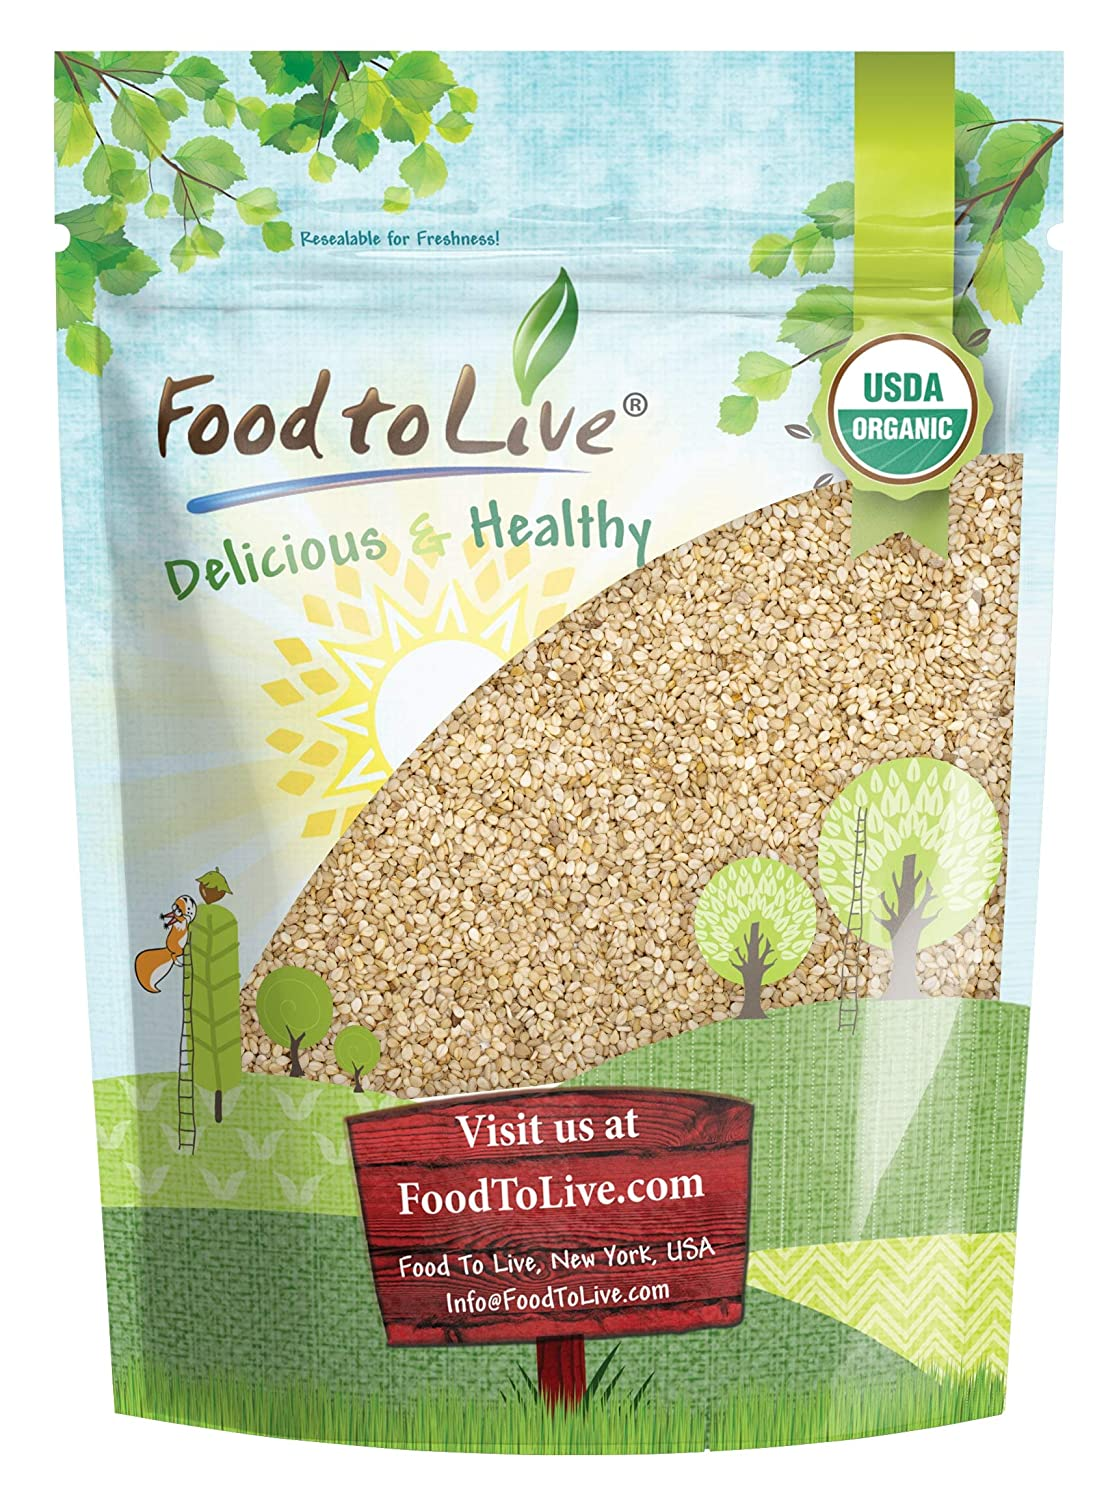 Organic Unhulled Sesame Seeds, 4 Pounds — Natural, Whole, White, Non-GMO, Raw, Kosher, Bulk, Rich in Calcium, Iron, and Fiber, Great for Baking